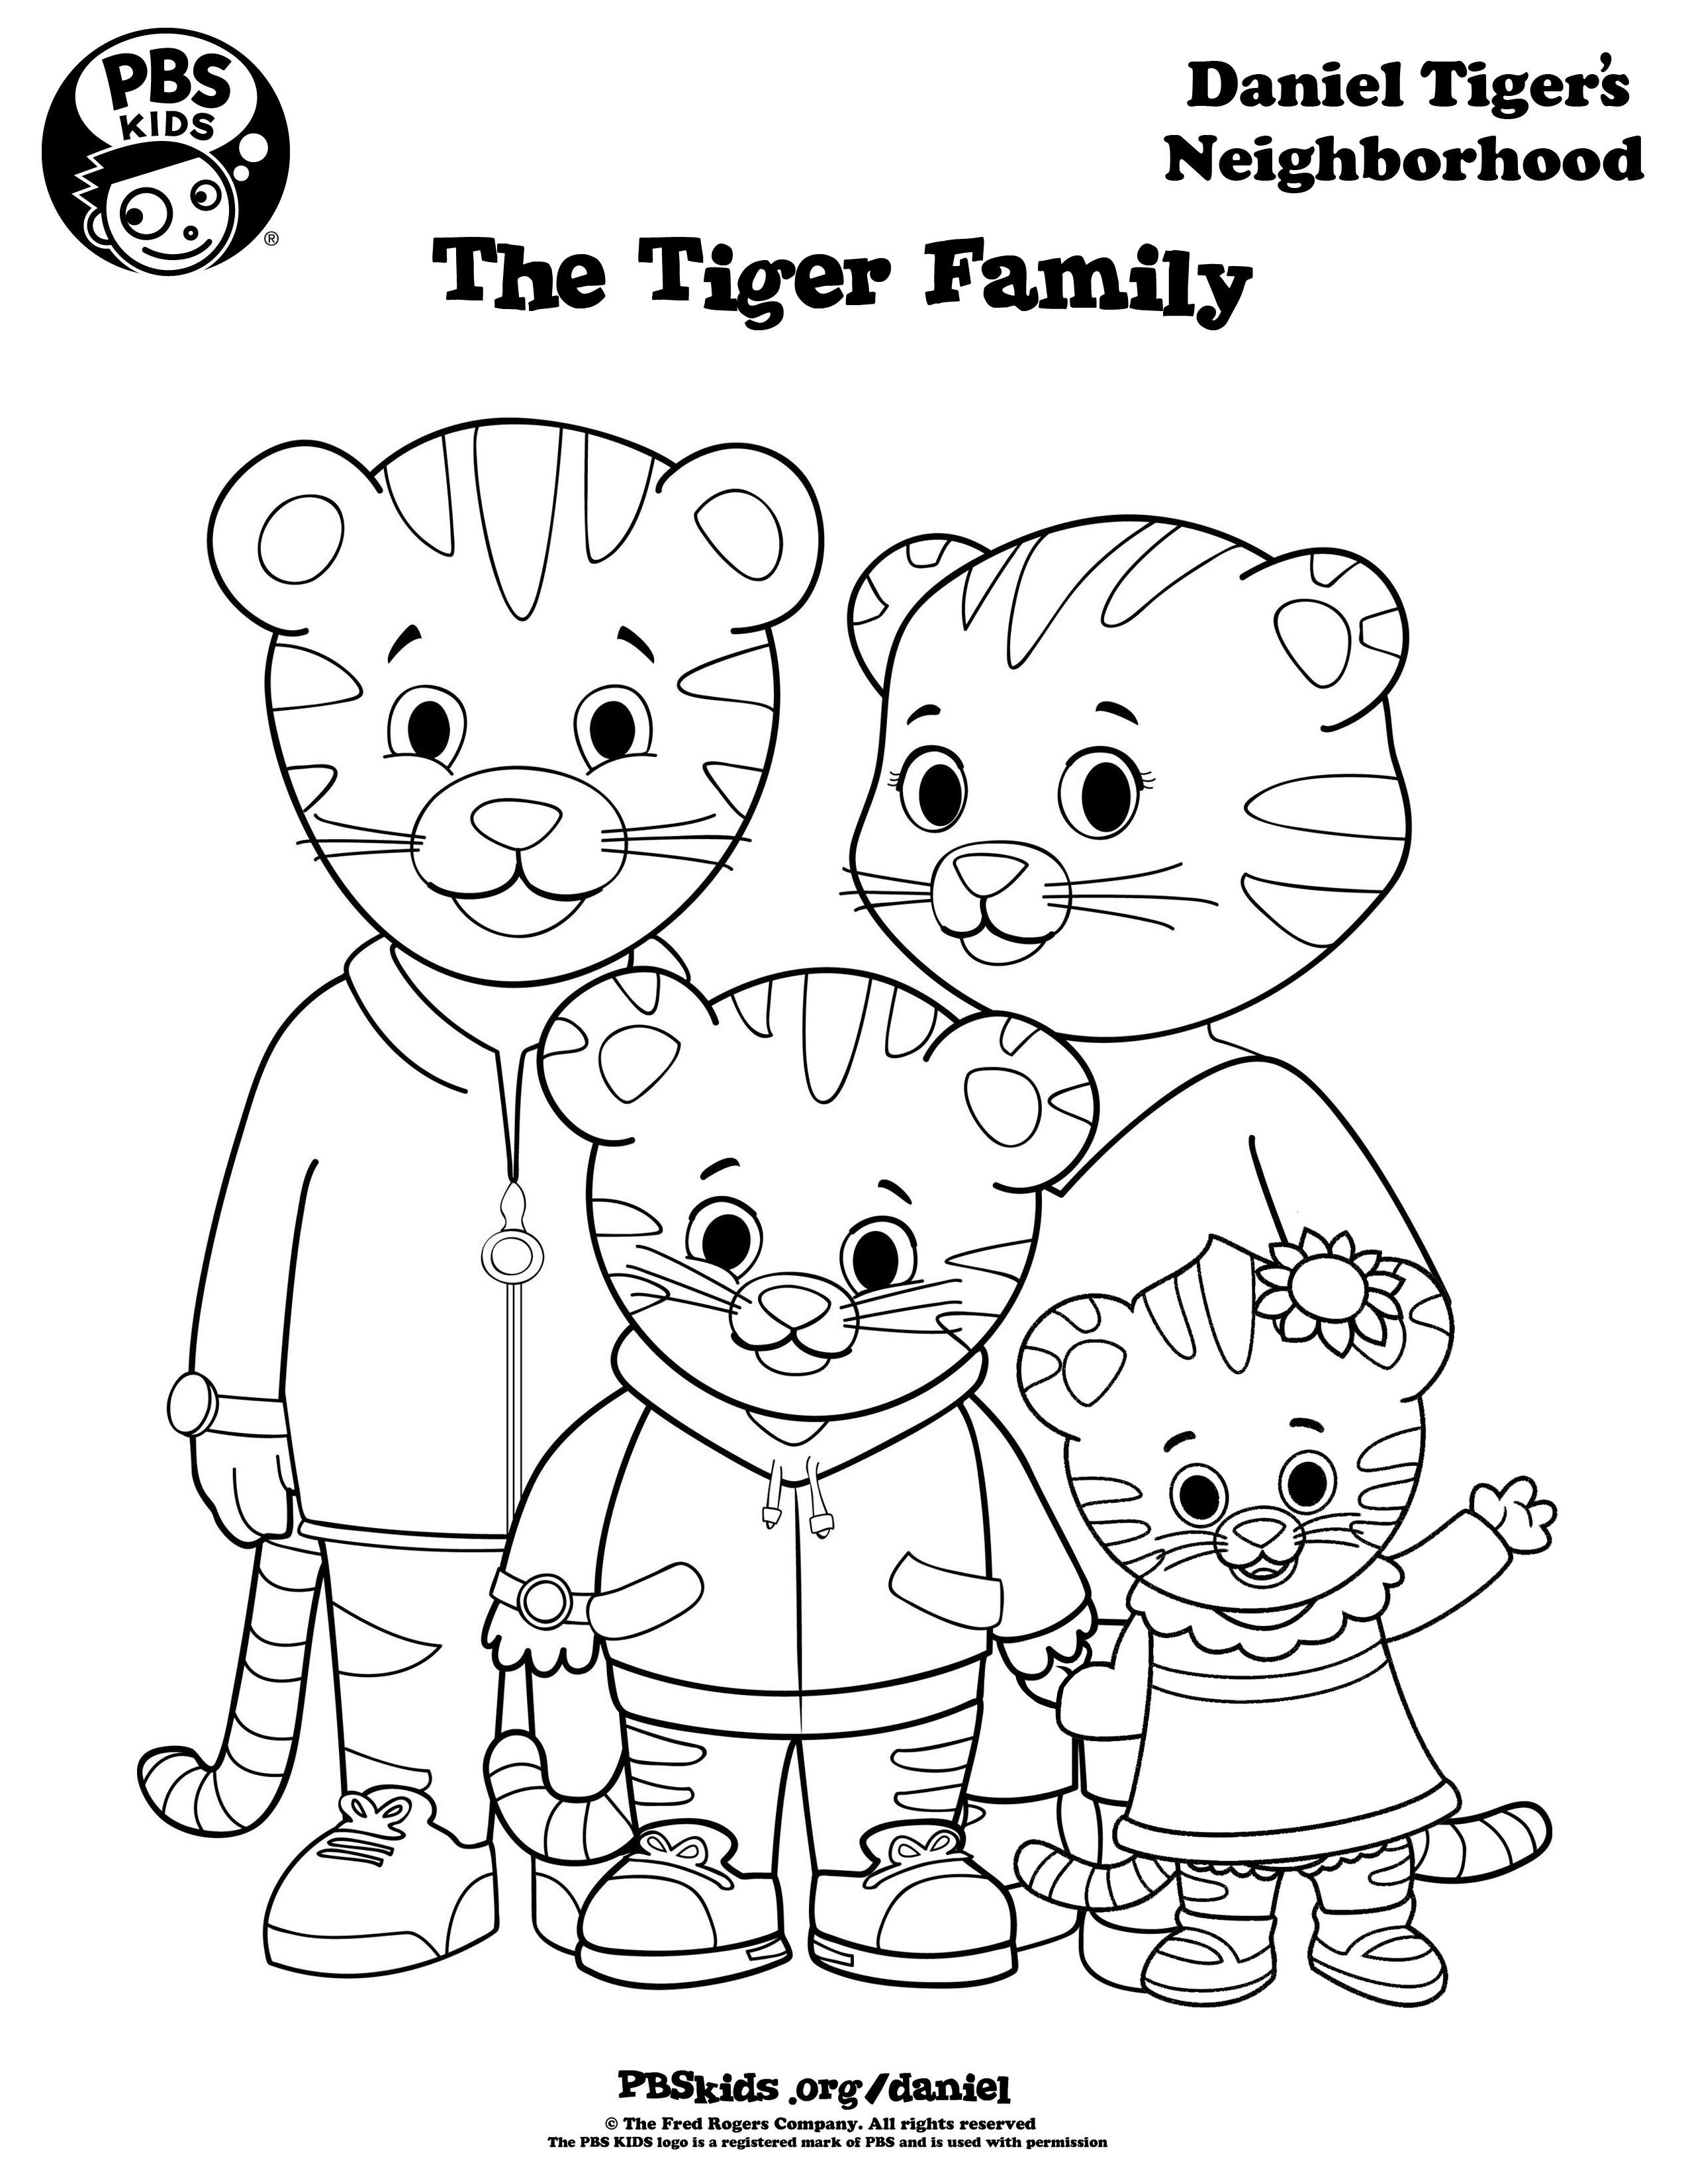 Coloring daniel tiger 39 s neighborhood pbs kids anna for Pbskids coloring pages